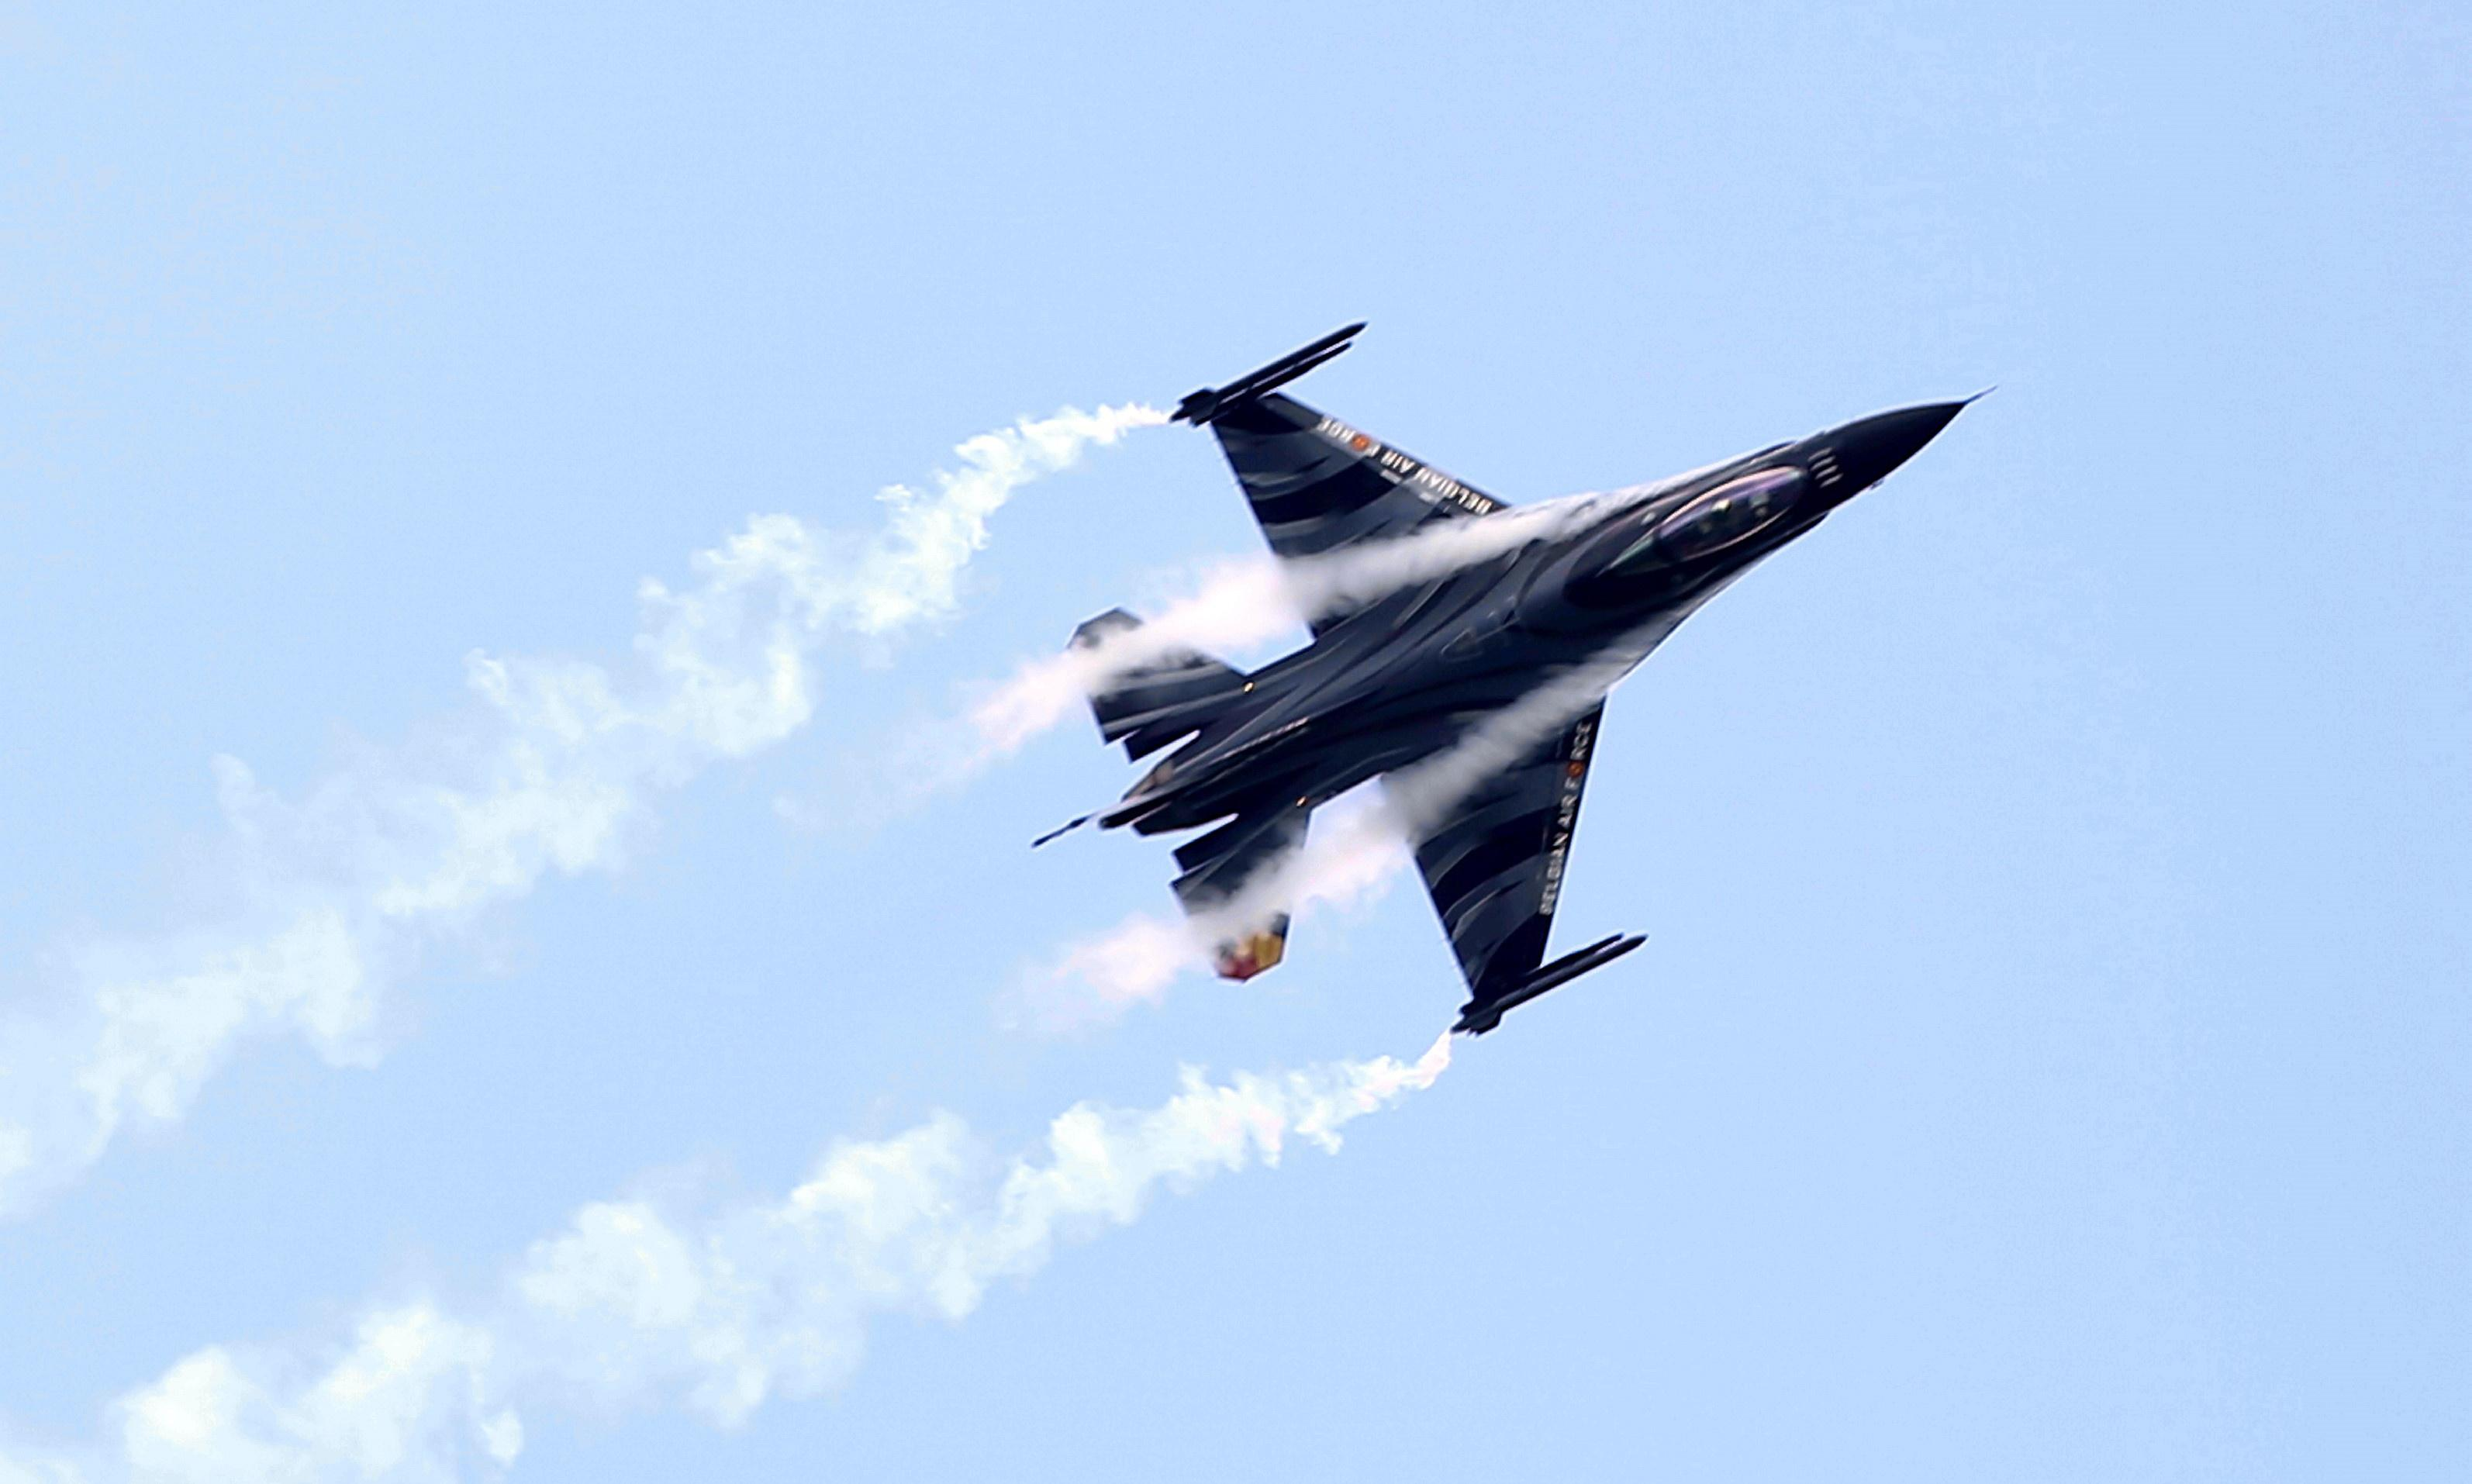 Pilot caught on electricity line as F-16 jet crashes in France